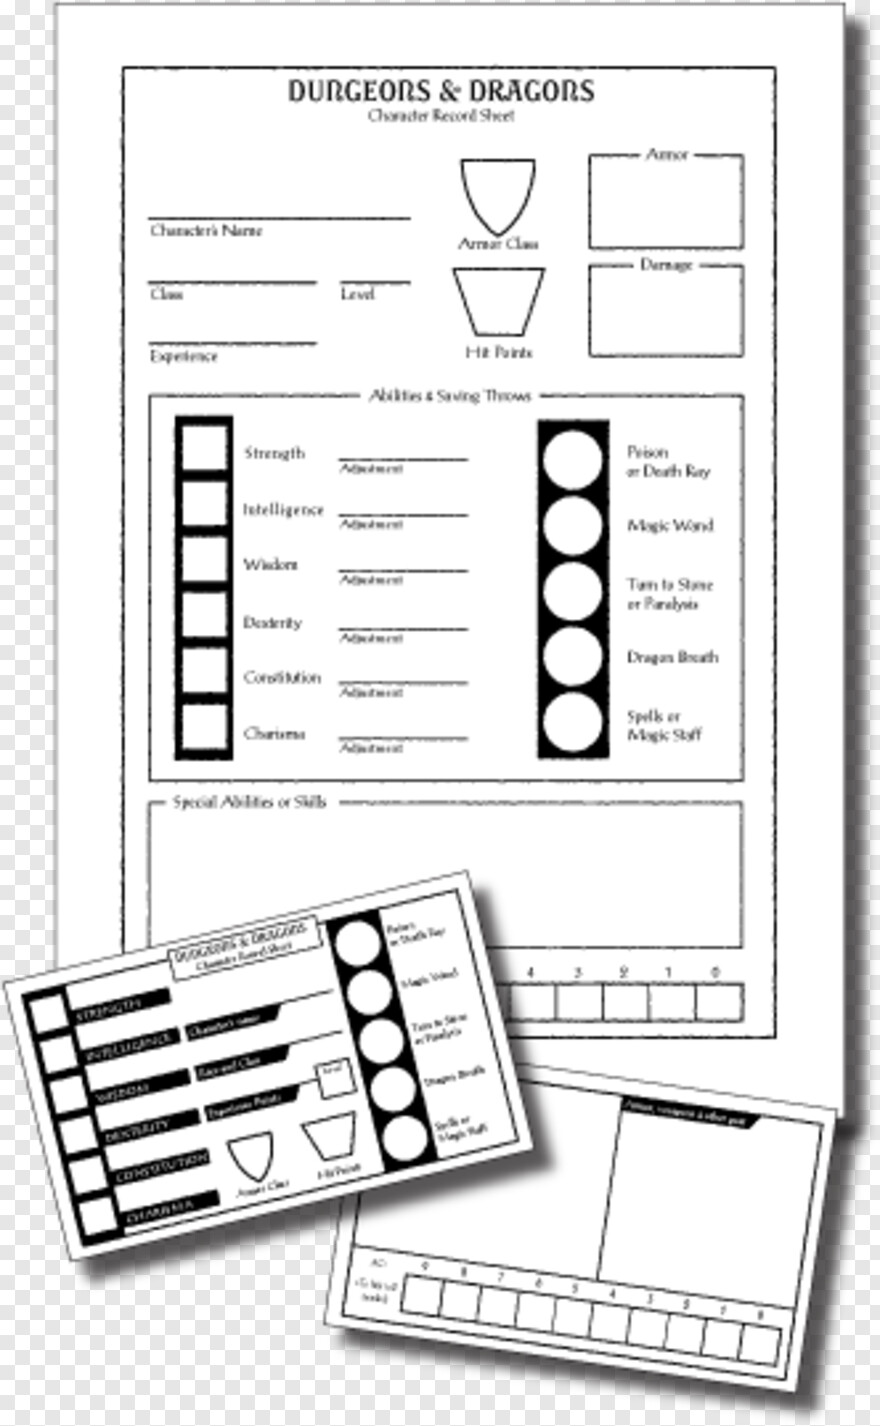 Rpg Character Sheet Template from www.pngjoy.com